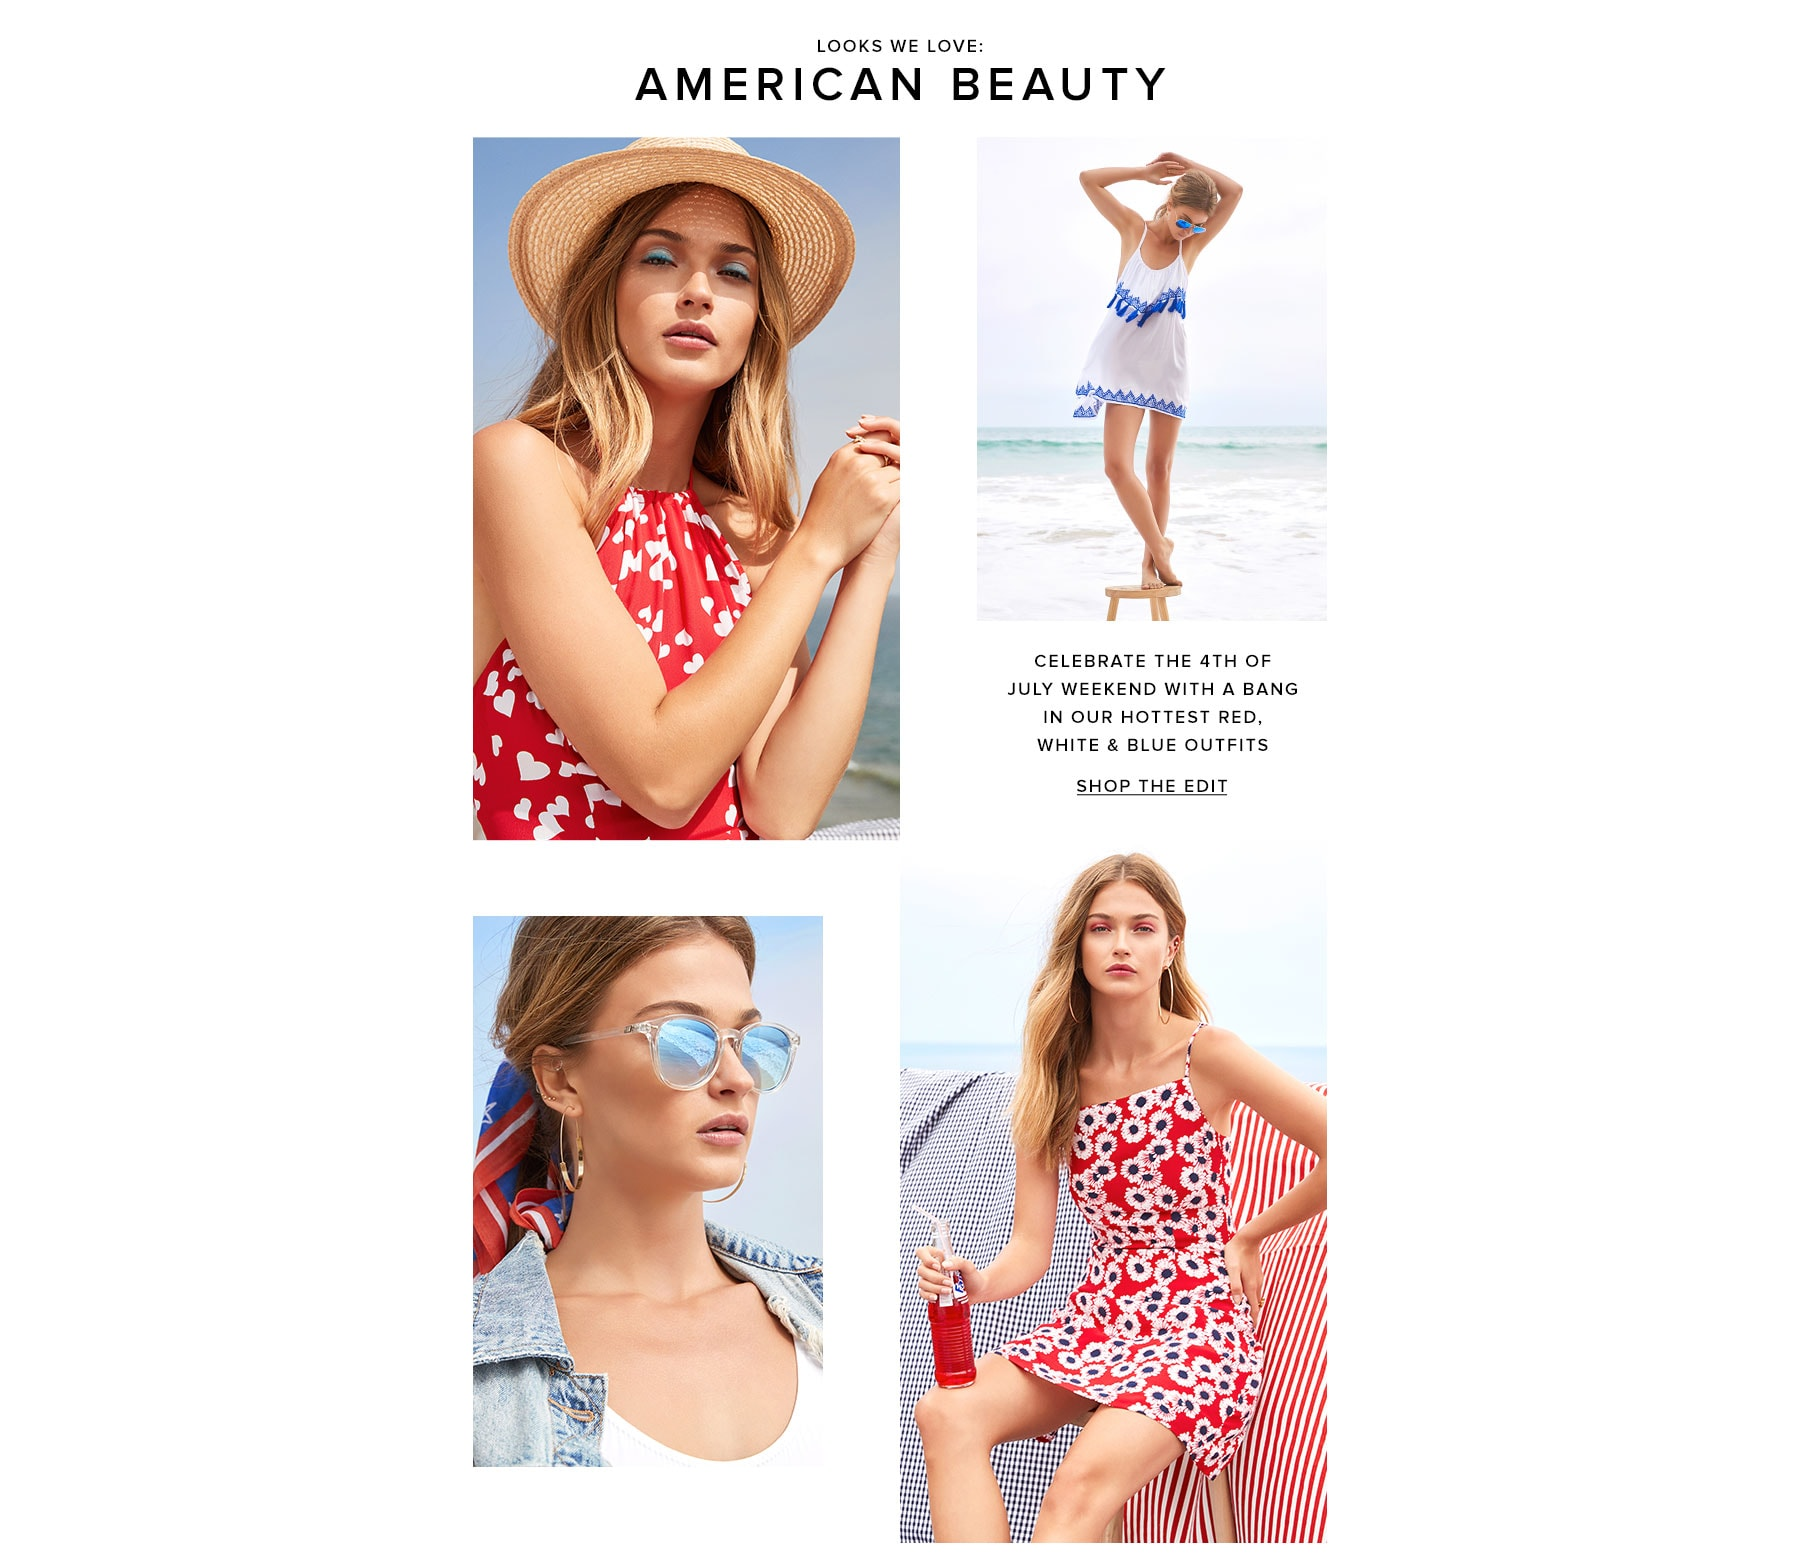 Looks We Love: American Beauty. Celebrate the 4th of July weekend with a bang in our hottest red, white & blue outfits. Shop the edit.